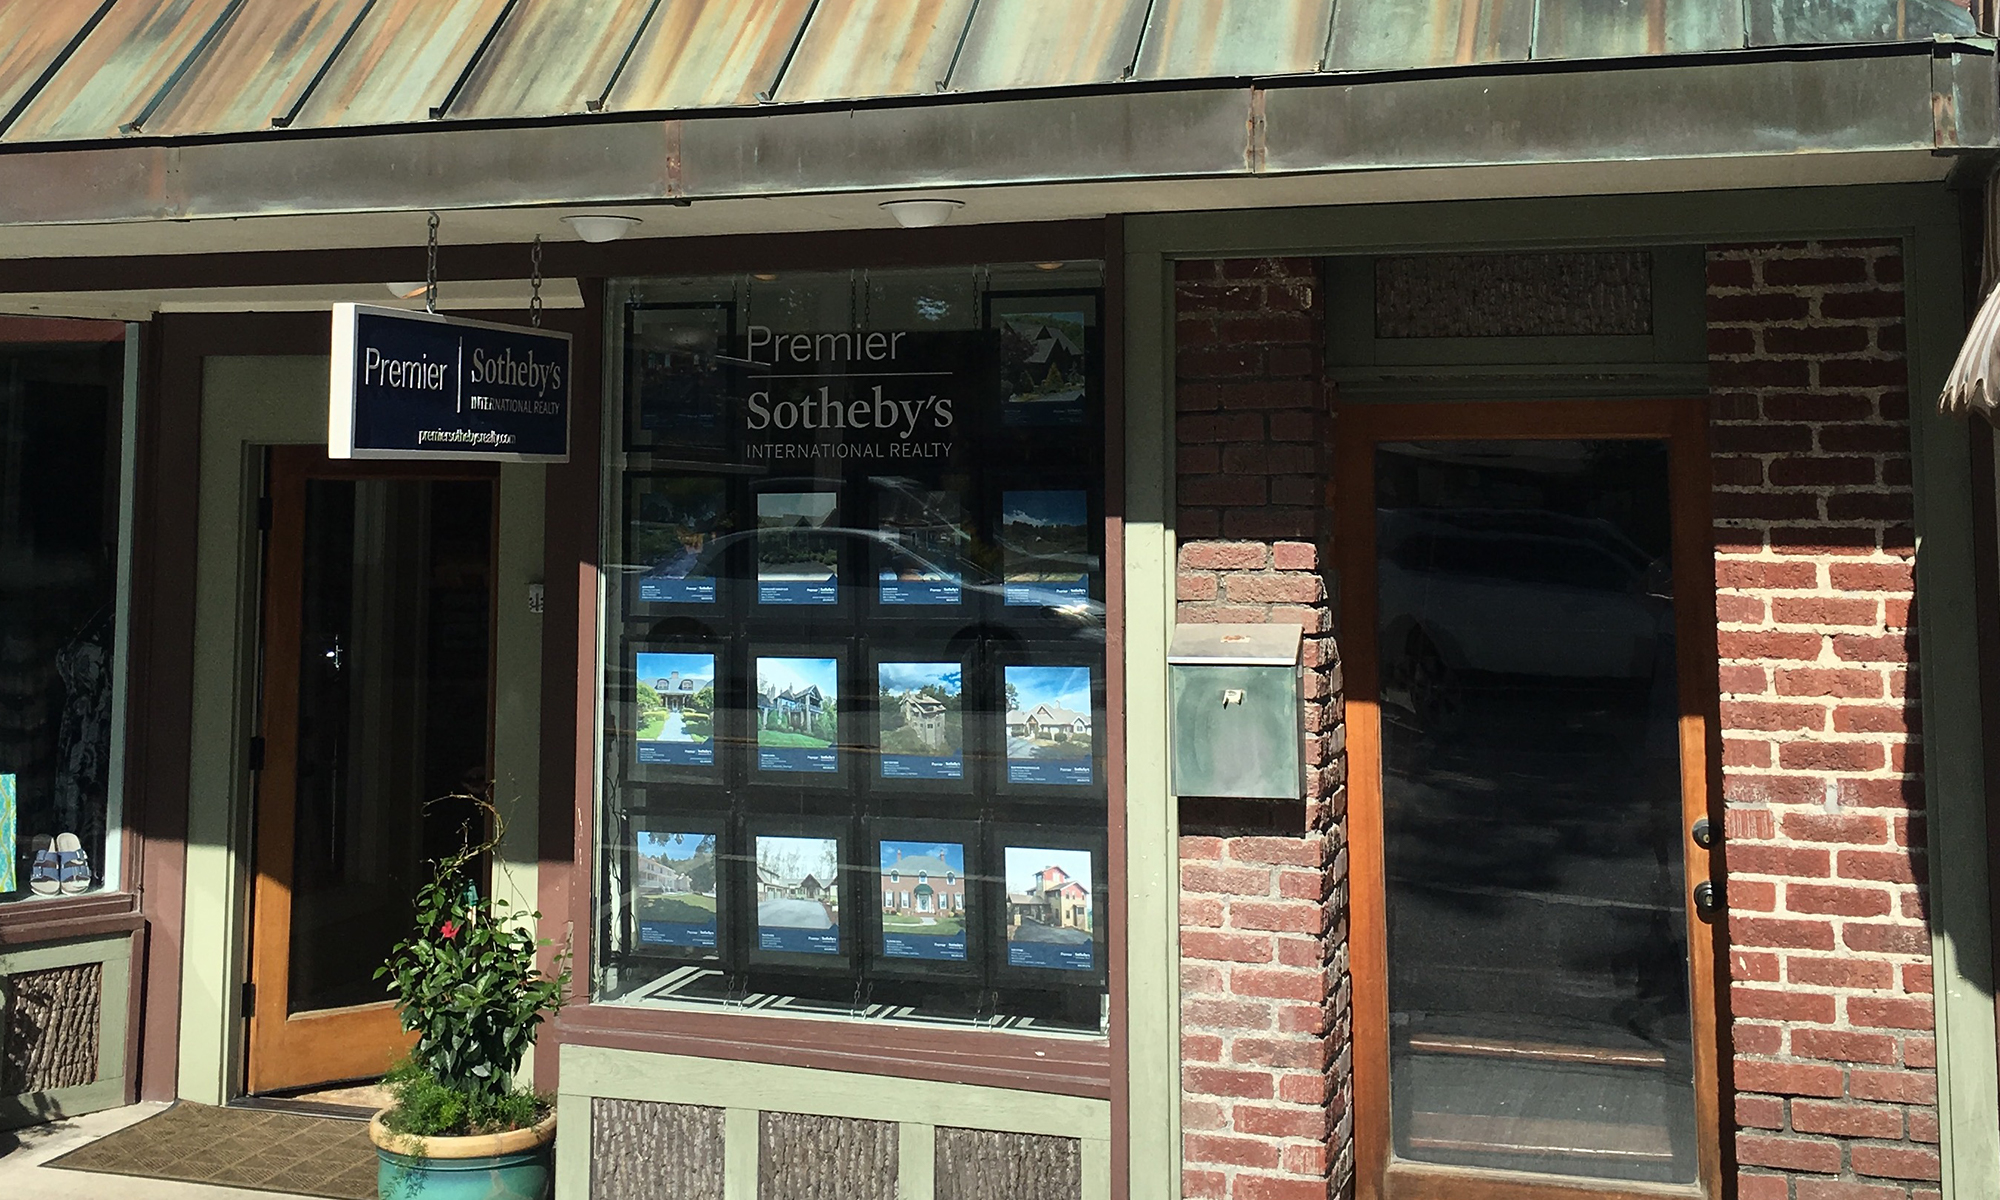 Premier Sotheby's International Realty Blowing Rock image 0